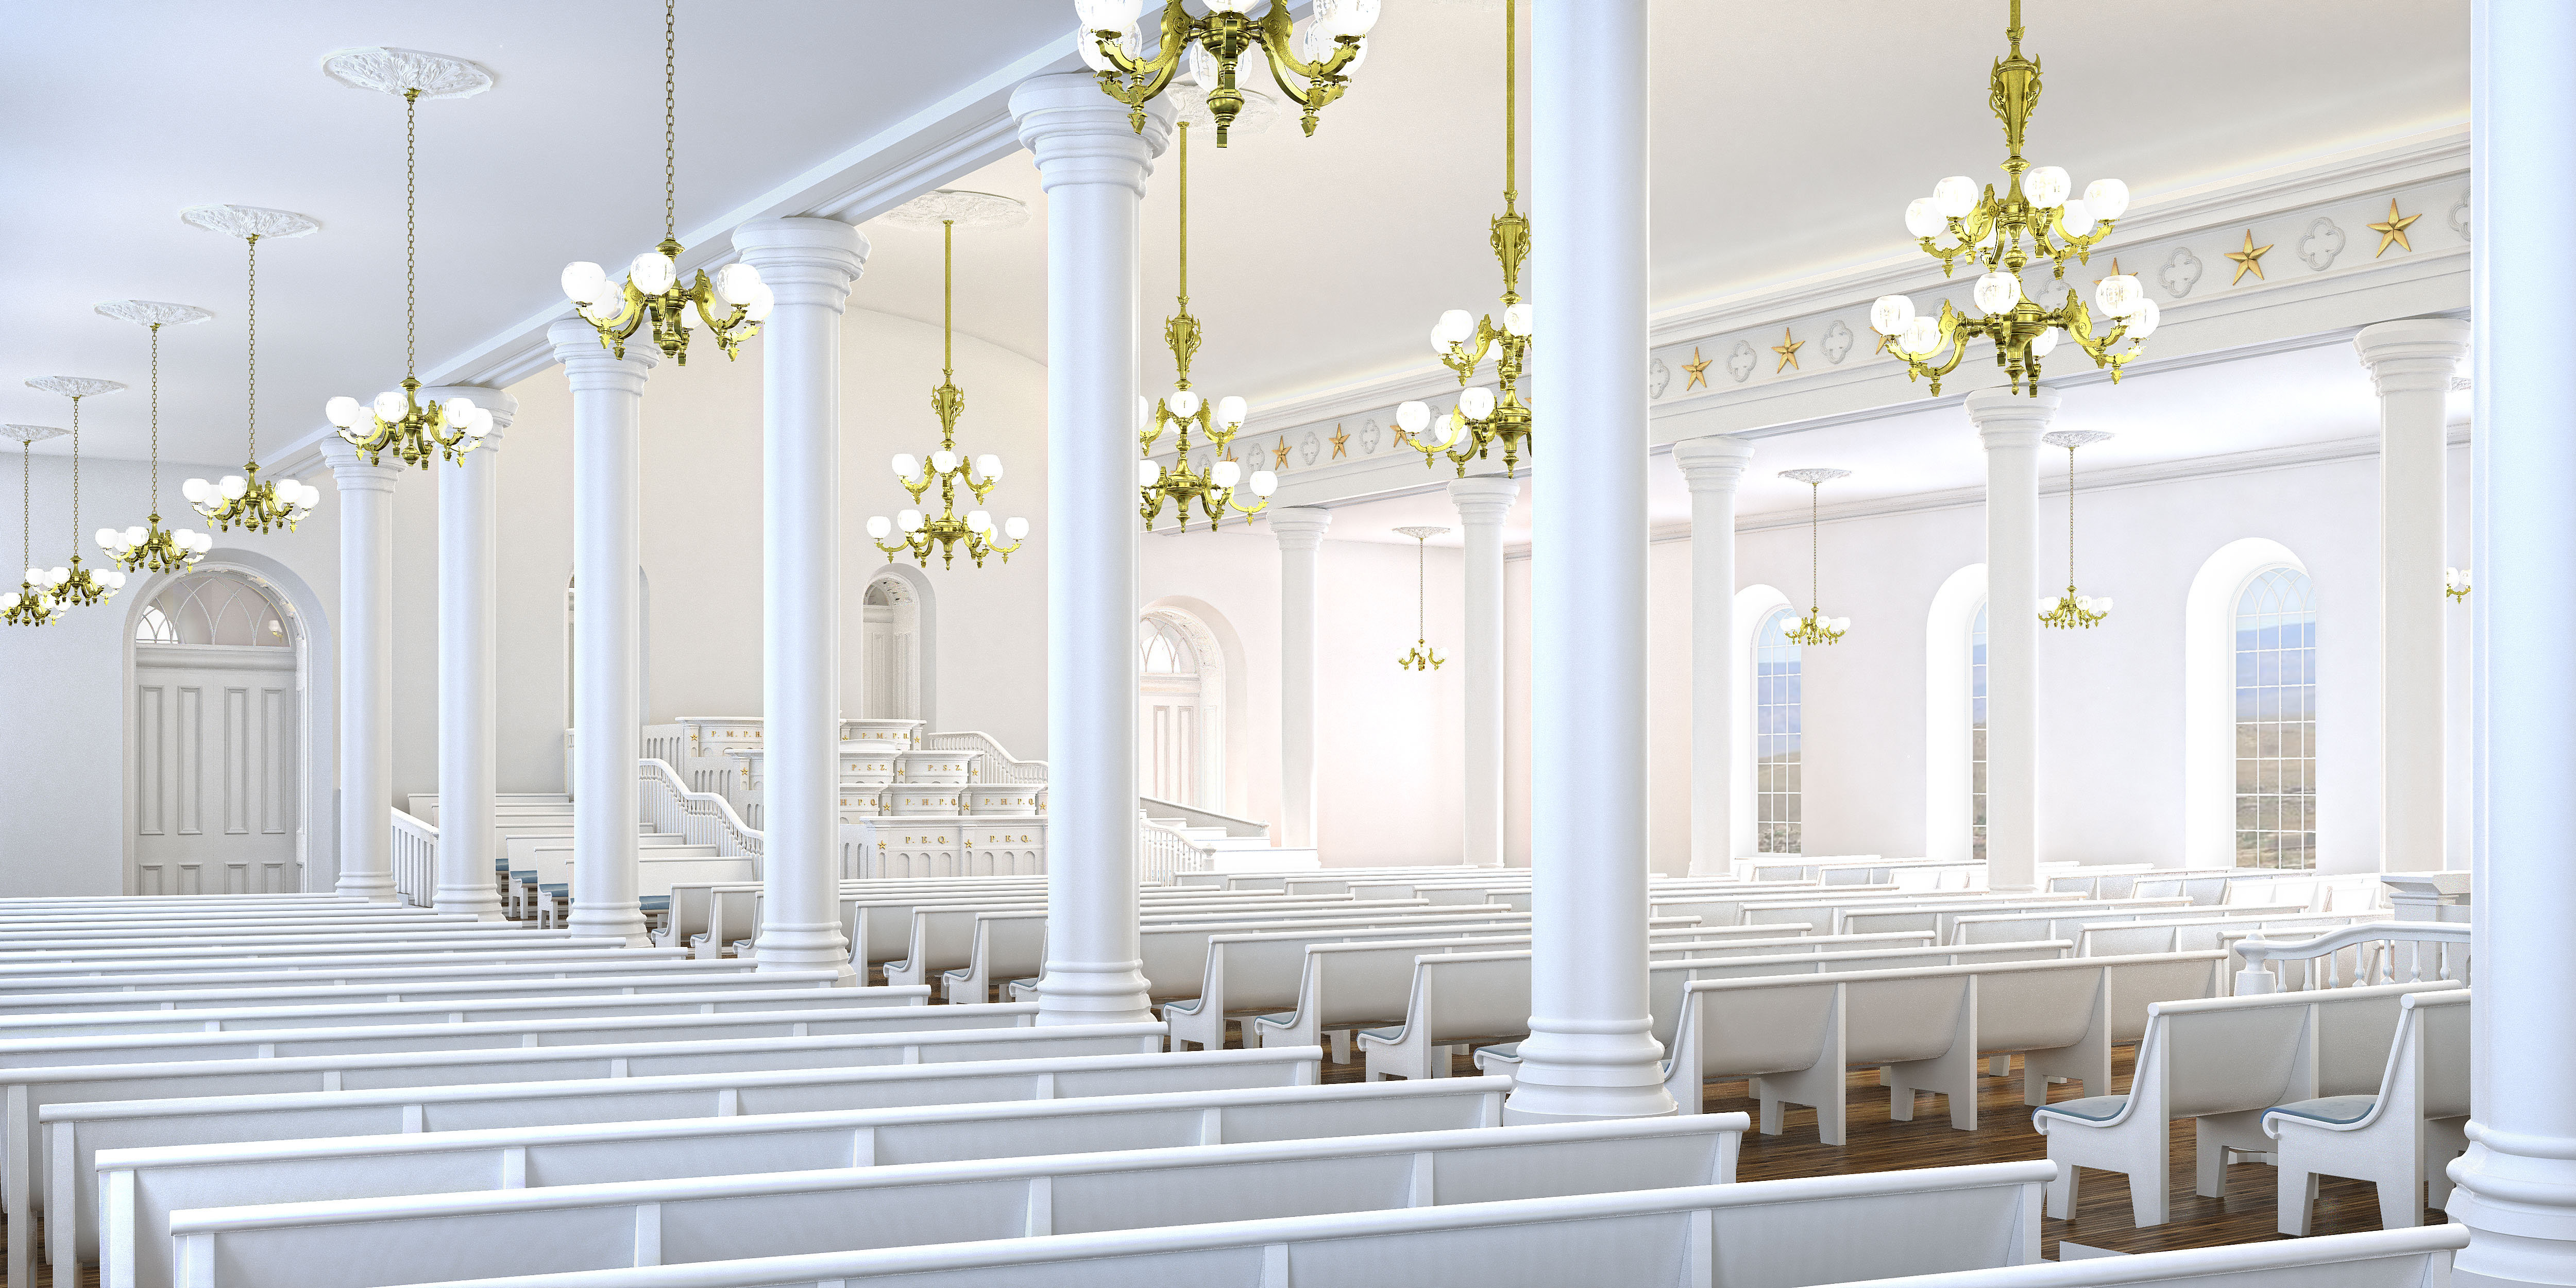 A rendering of the priesthood room in the St. George Utah Temple. The temple closed on Nov. 4, 2019, for extensive renovations.